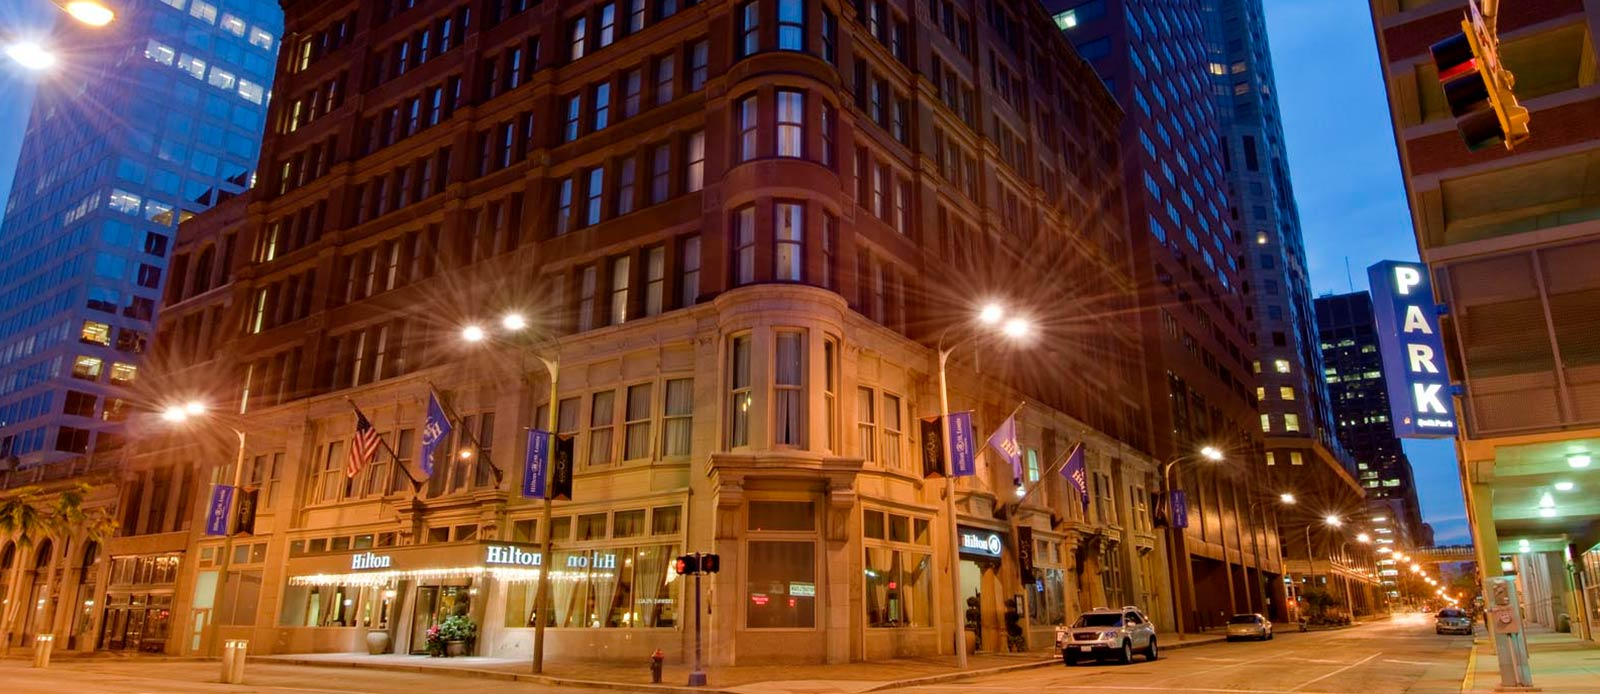 Image of Hotel Exterior at Night, Hilton St. Louis Downtown at the Arch in St. Louis, Missouri, 1888, Member of Historic Hotels of America, Special Offers, Discounted Rates, Families, Romantic Escape, Honeymoons, Anniversaries, Reunions